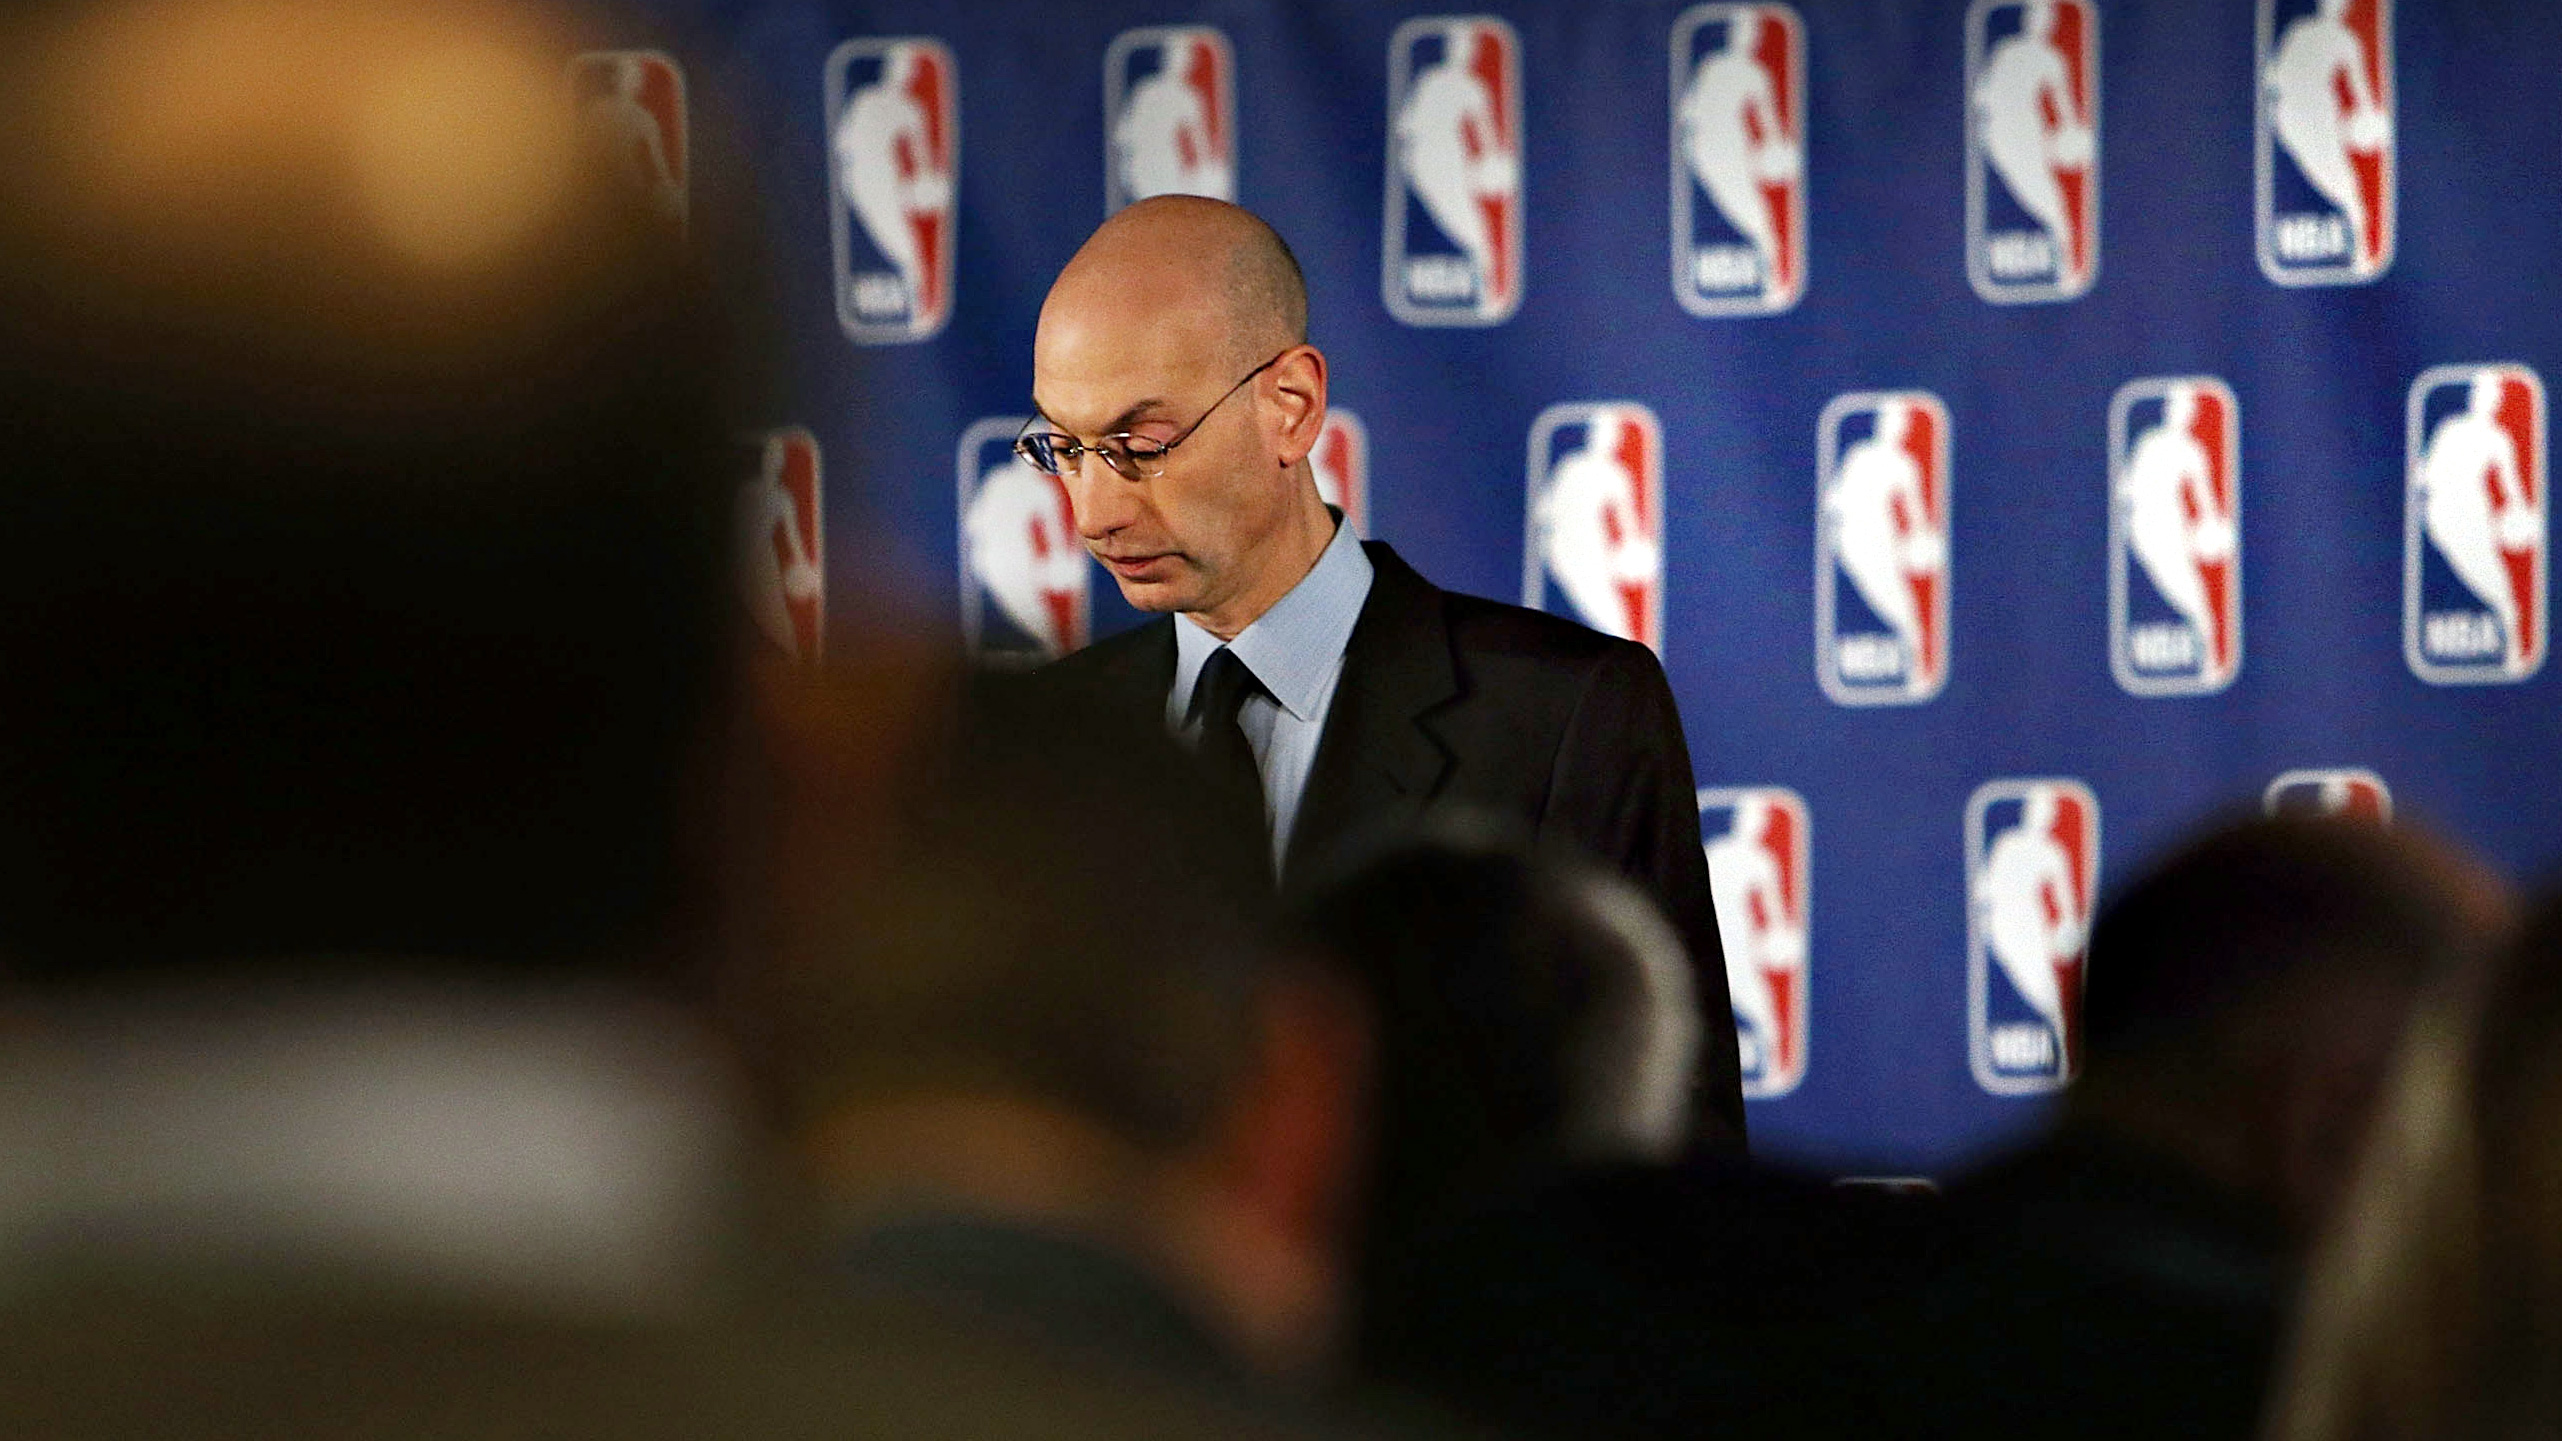 eacafd778b77 NBA Commissioner Adam Silver addresses the media about the investigation  involving Los Angeles Clippers owner Donald Sterling and accusations that  he made ...